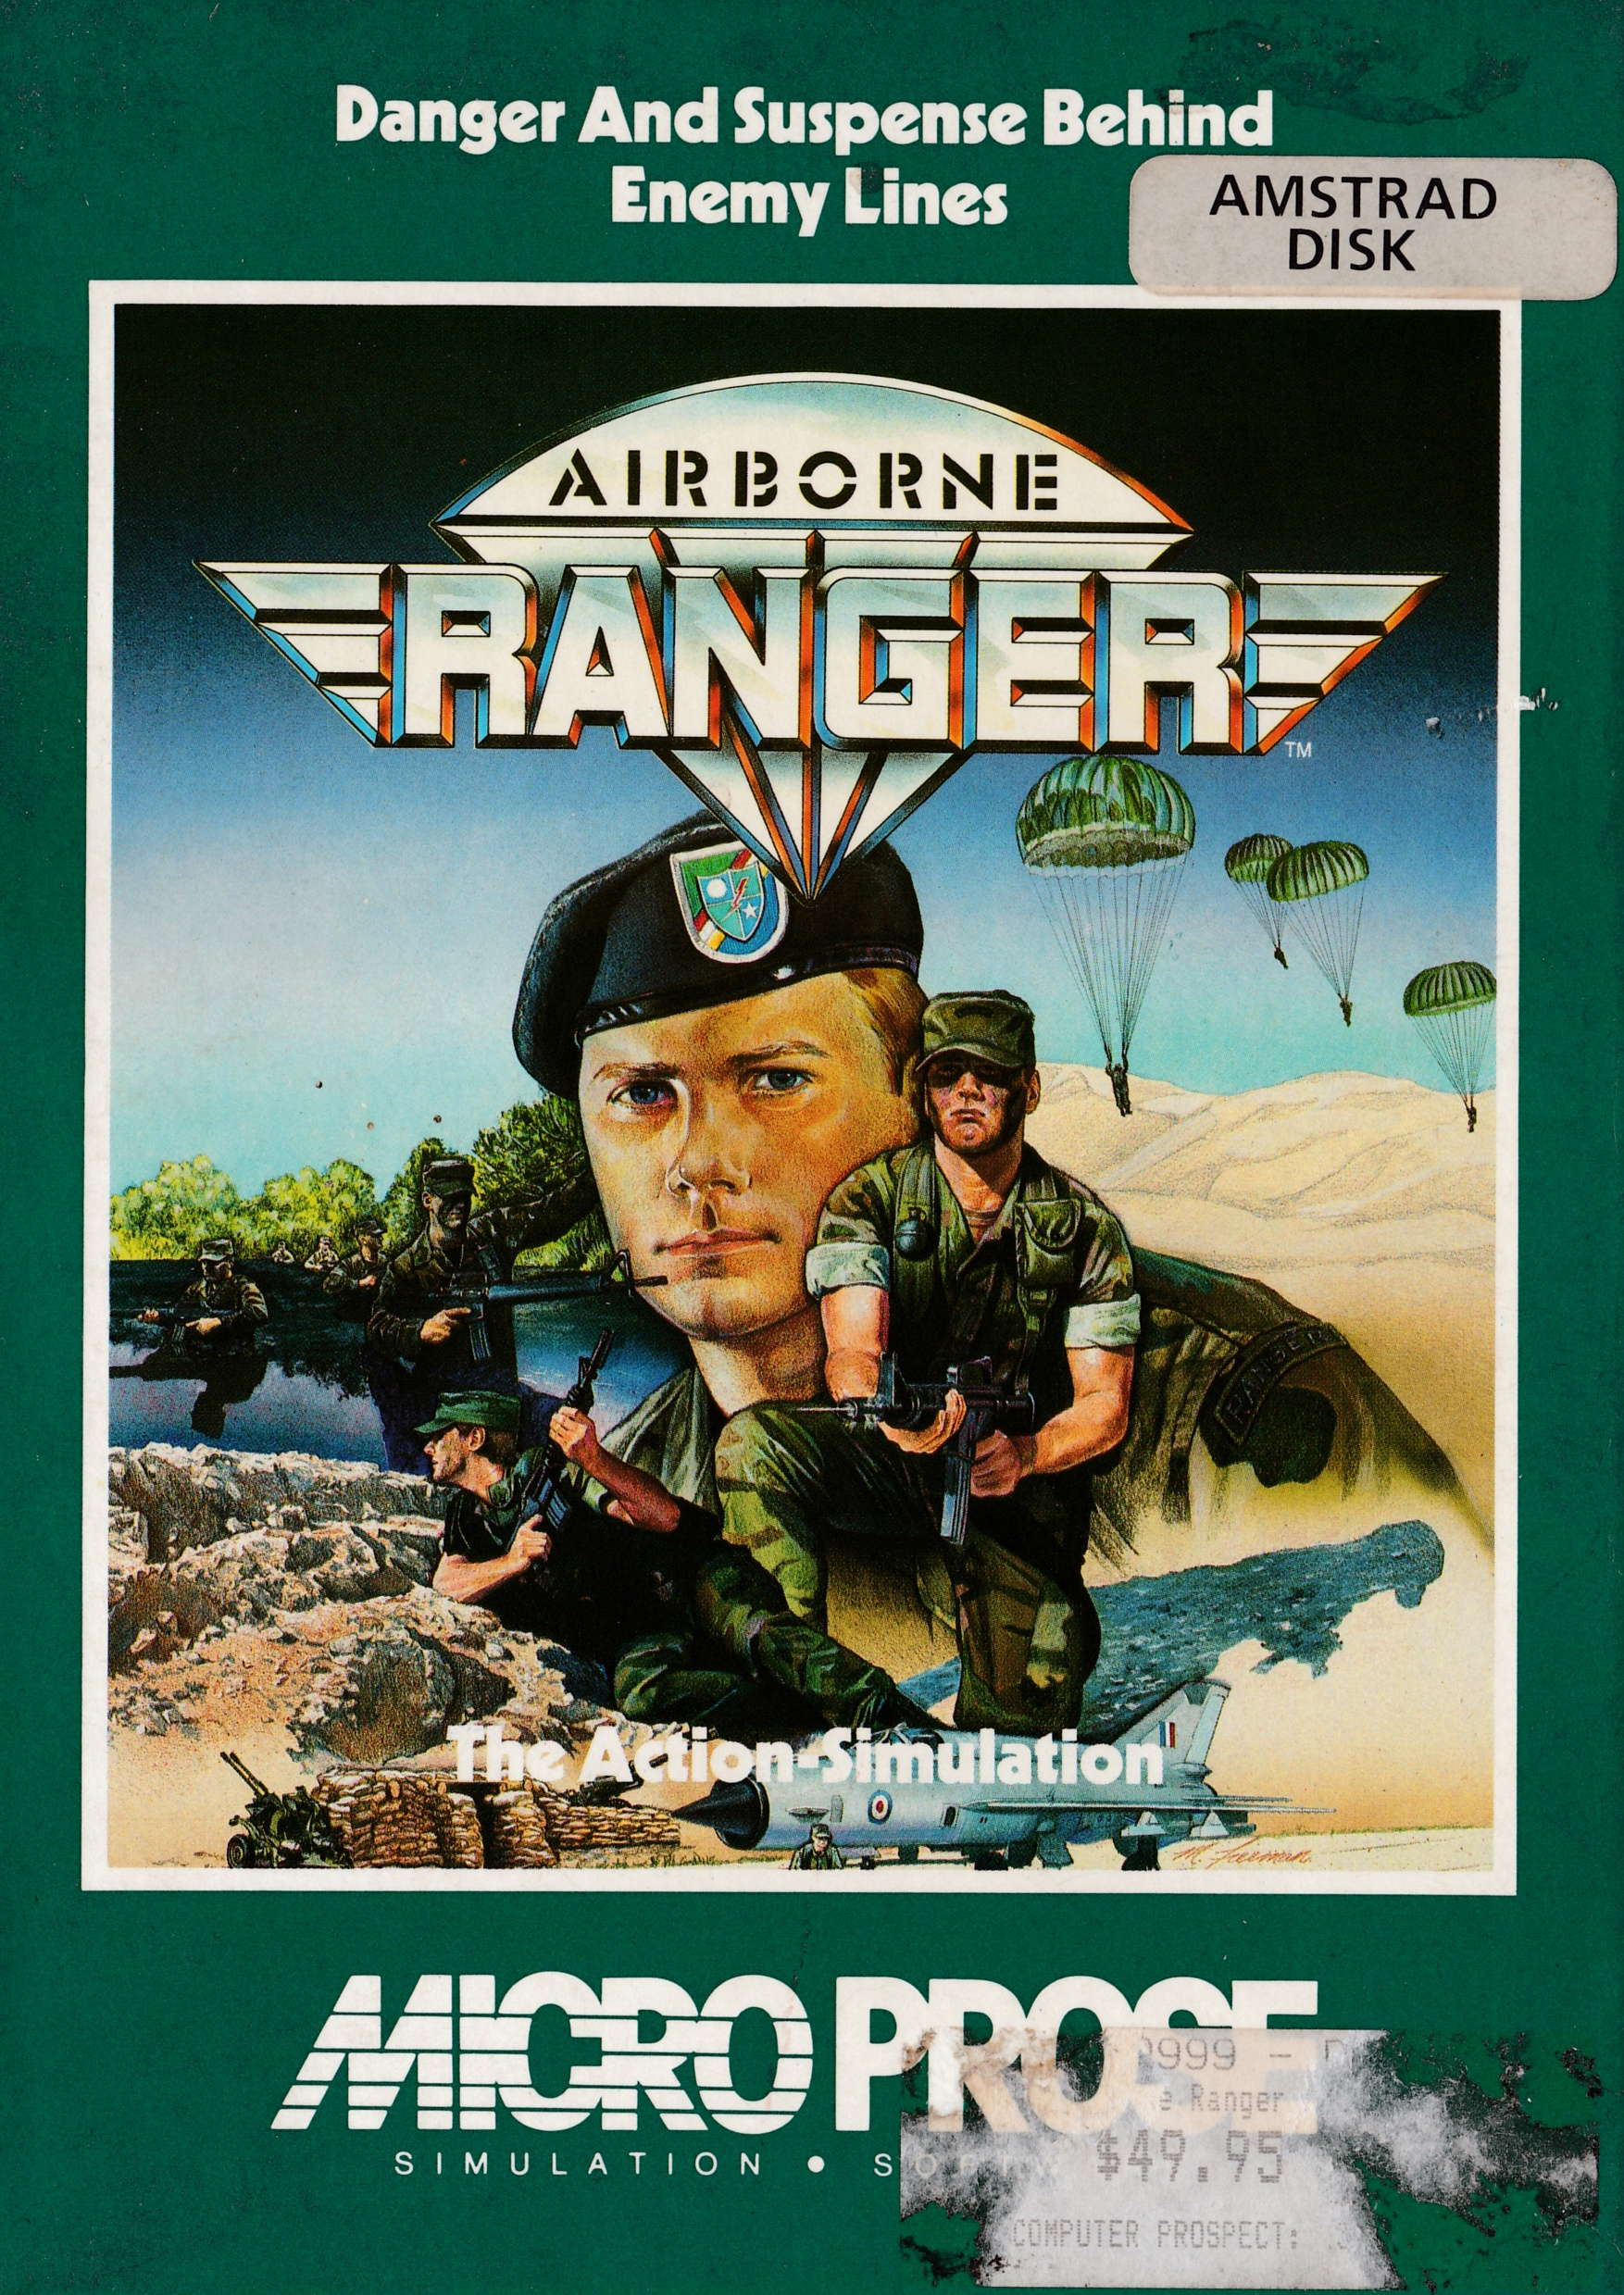 cover of the Amstrad CPC game Airborne Ranger  by GameBase CPC